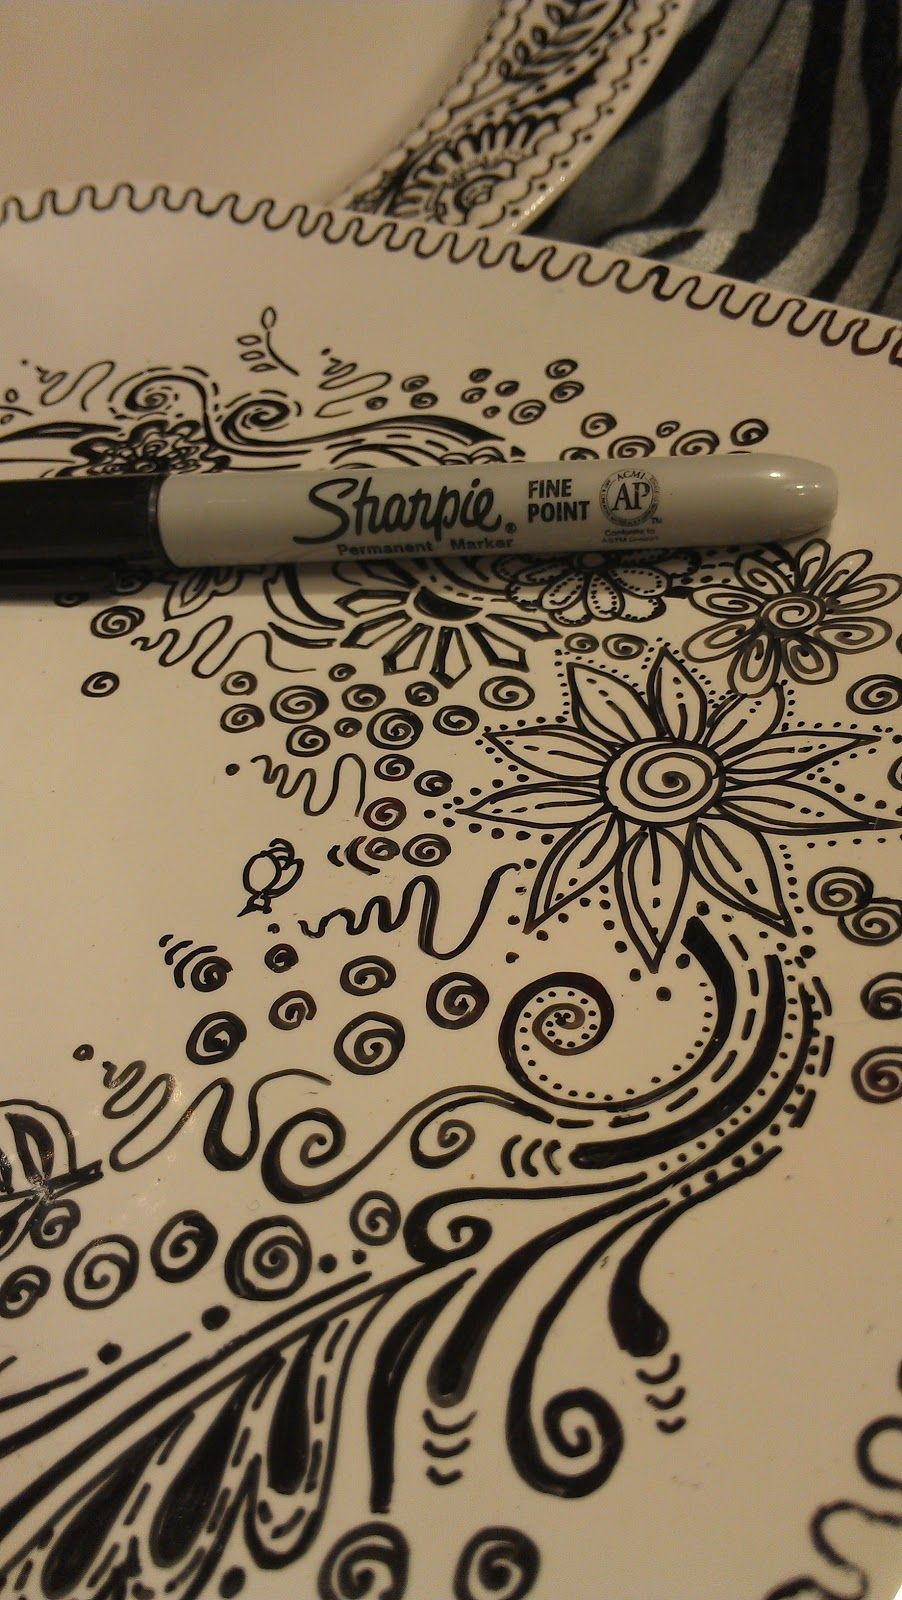 cool designs to draw with sharpie. DIY Sharpie Markers On Plates: Another Great Project/ Gift Idea With Sharpies. Personalized Designs Plain White China Dishes Using Pens. Cool To Draw